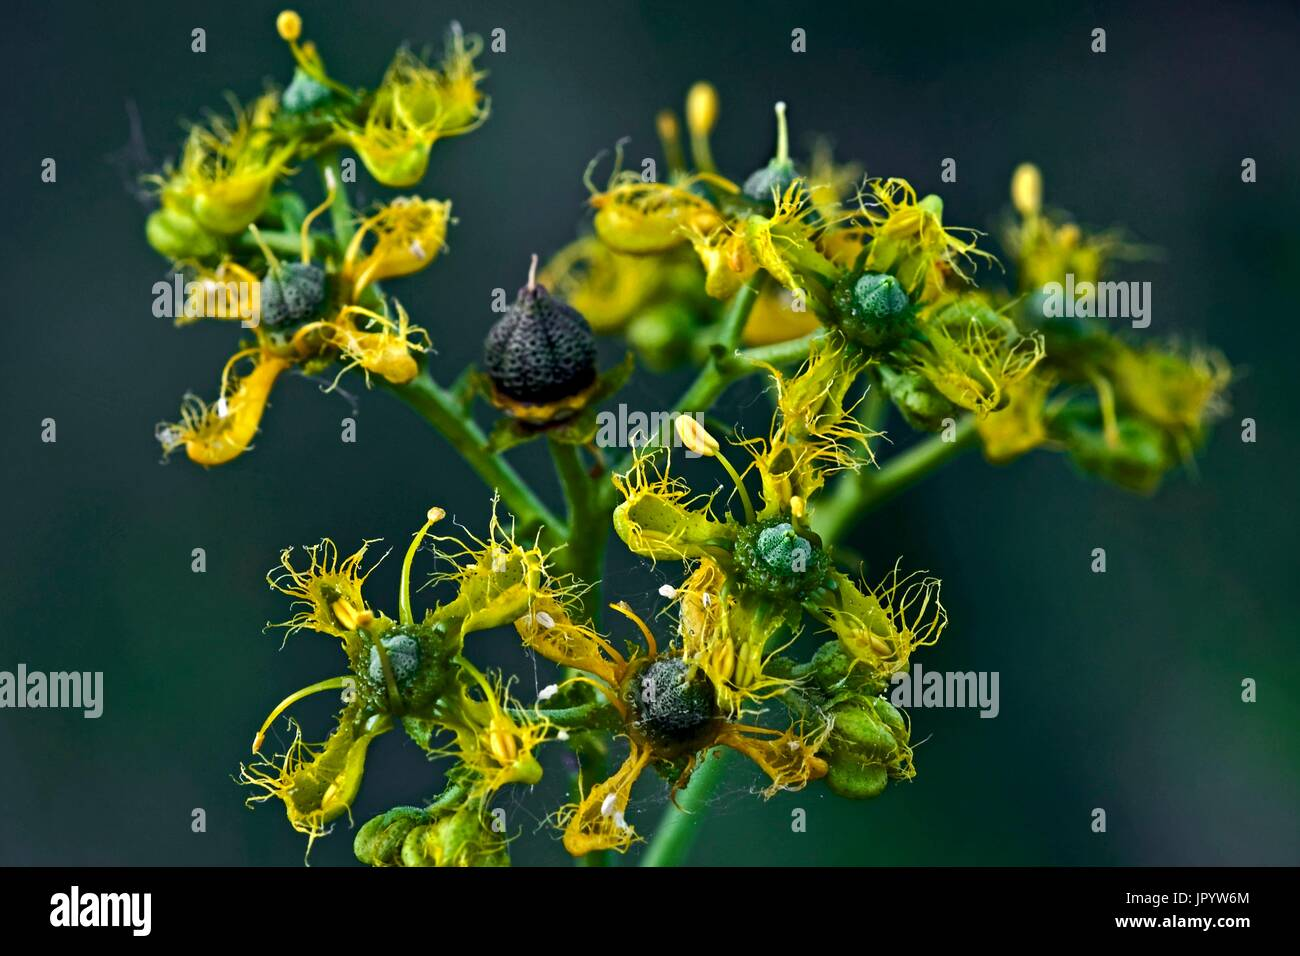 Fringed rue (Ruta chalepensis) in bloom. Used as medicinal plant. Poisonous plant. Also used as a magical plant (trditional culture). Balaguer. Noguera. Lleida. Catalunya. Spain. - Stock Image